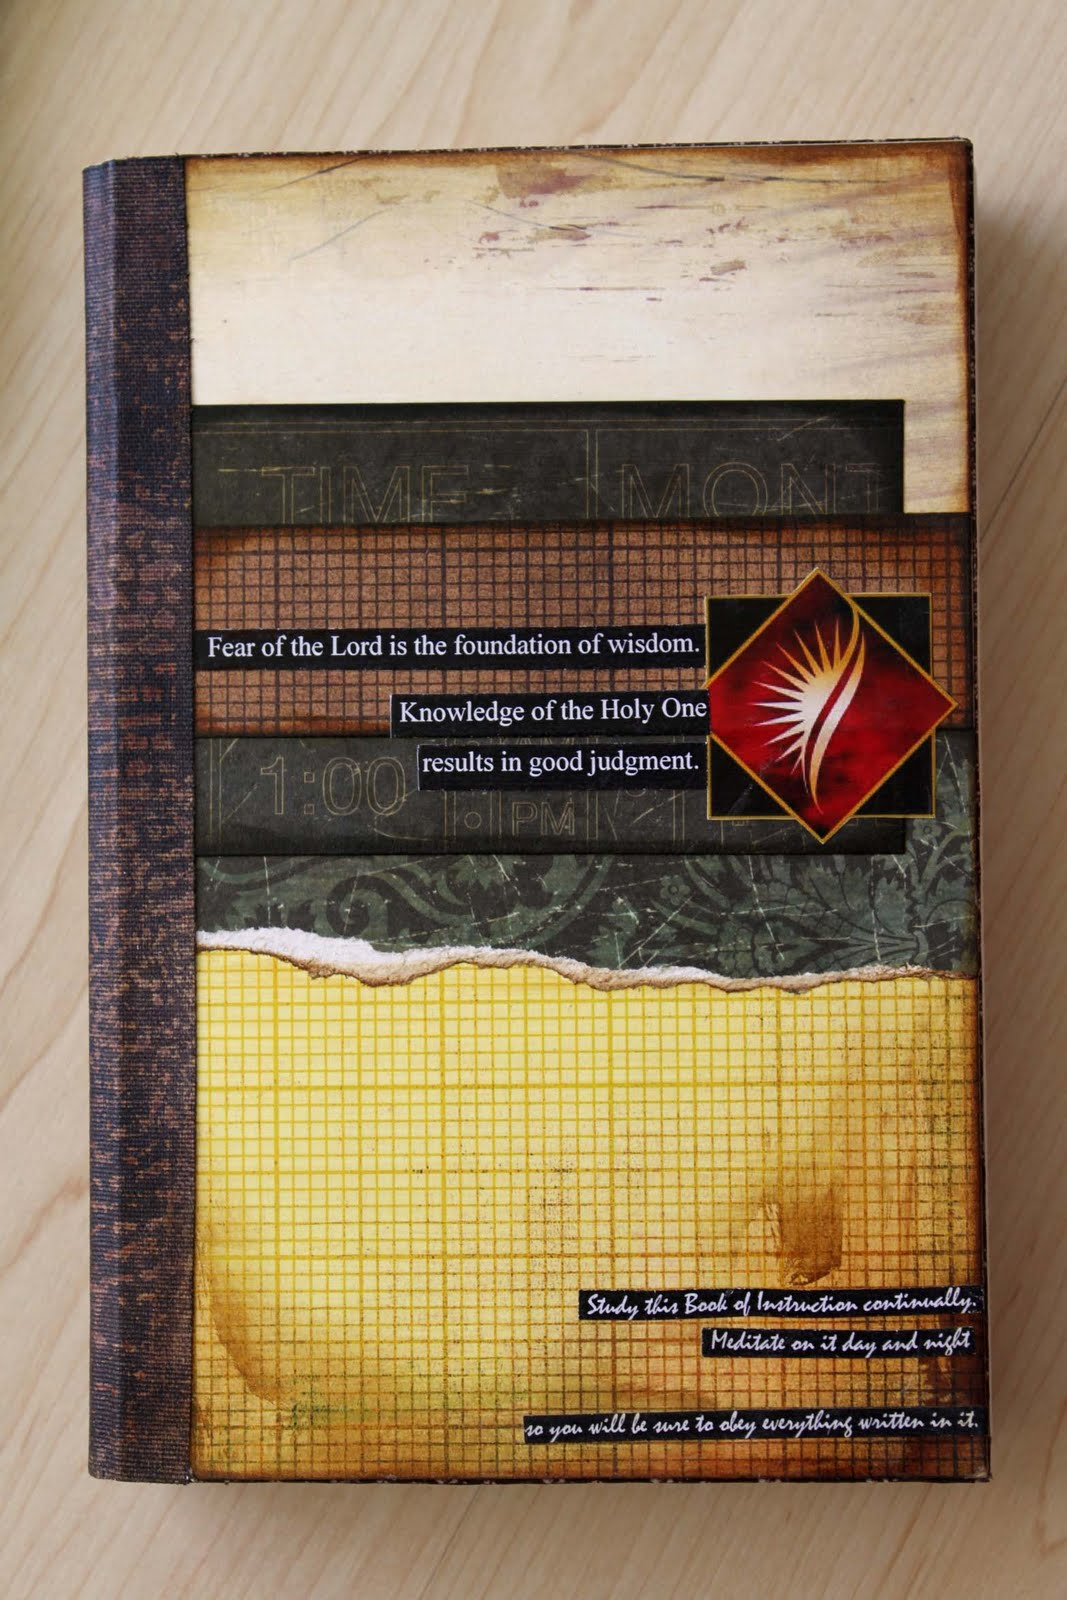 How to make scrapbook for husband - Tuesday May 11 2010